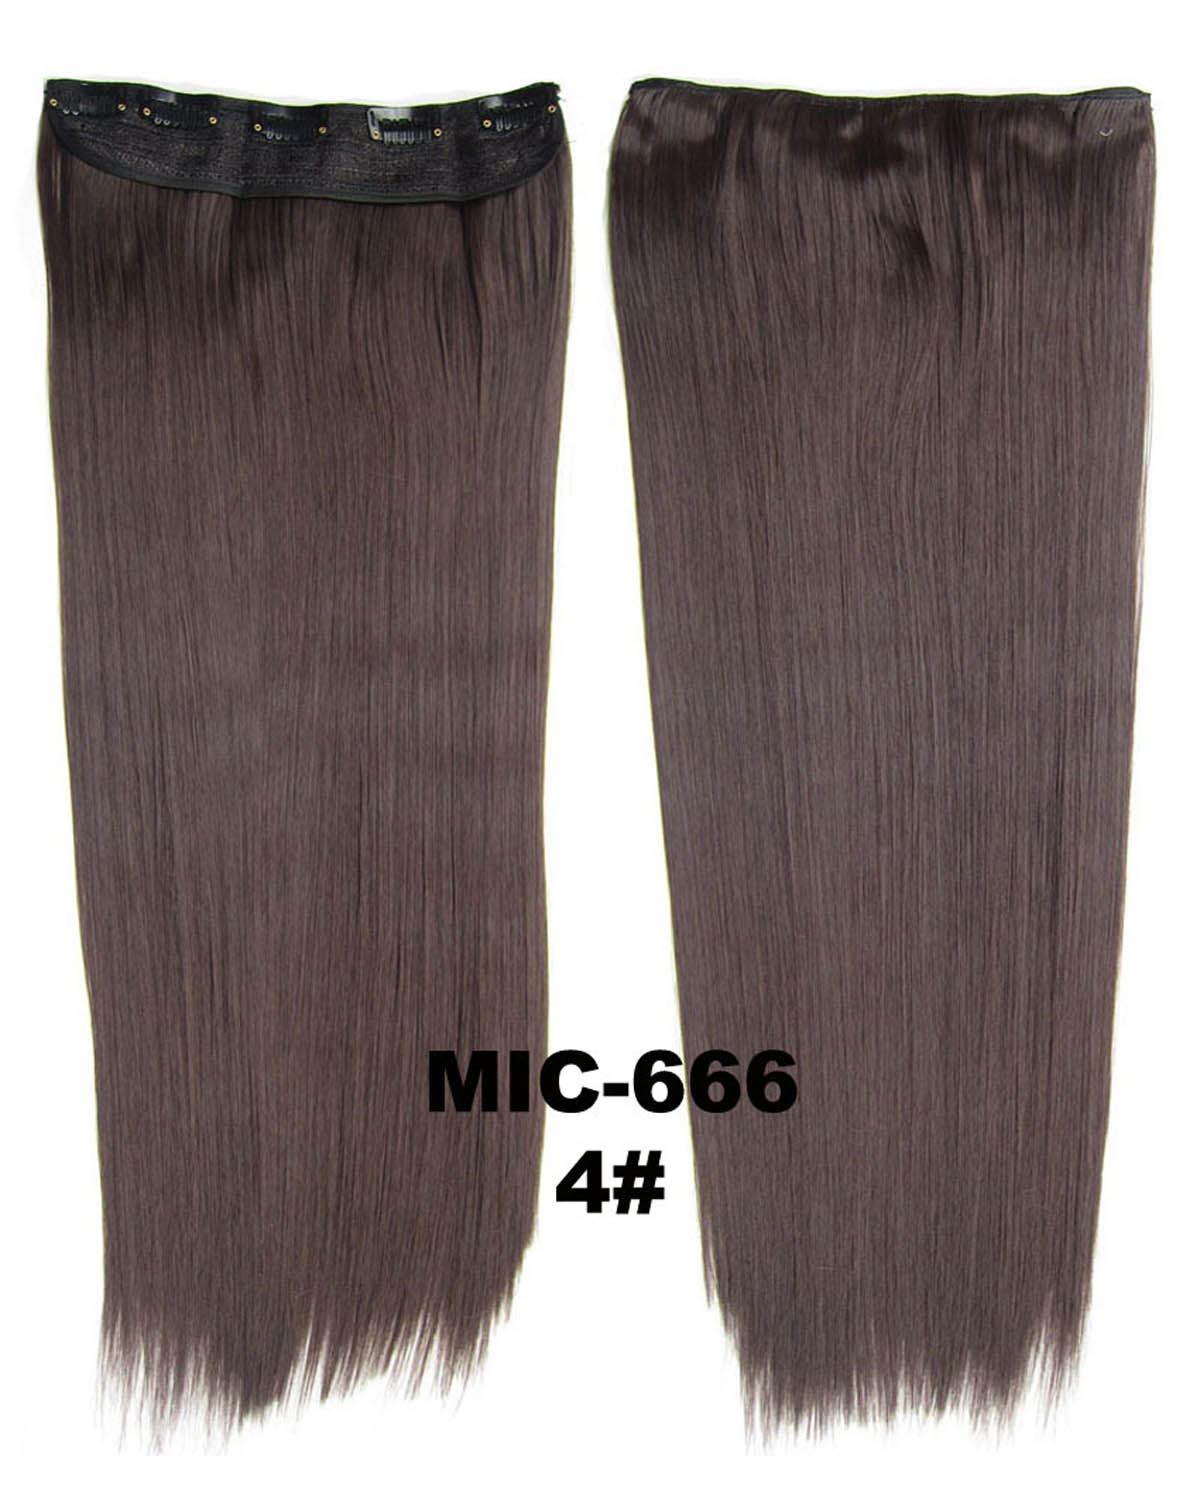 24 inch Popular Straight One Piece 5 Clips Clip in Synthetic Hair Extension 4# 100g